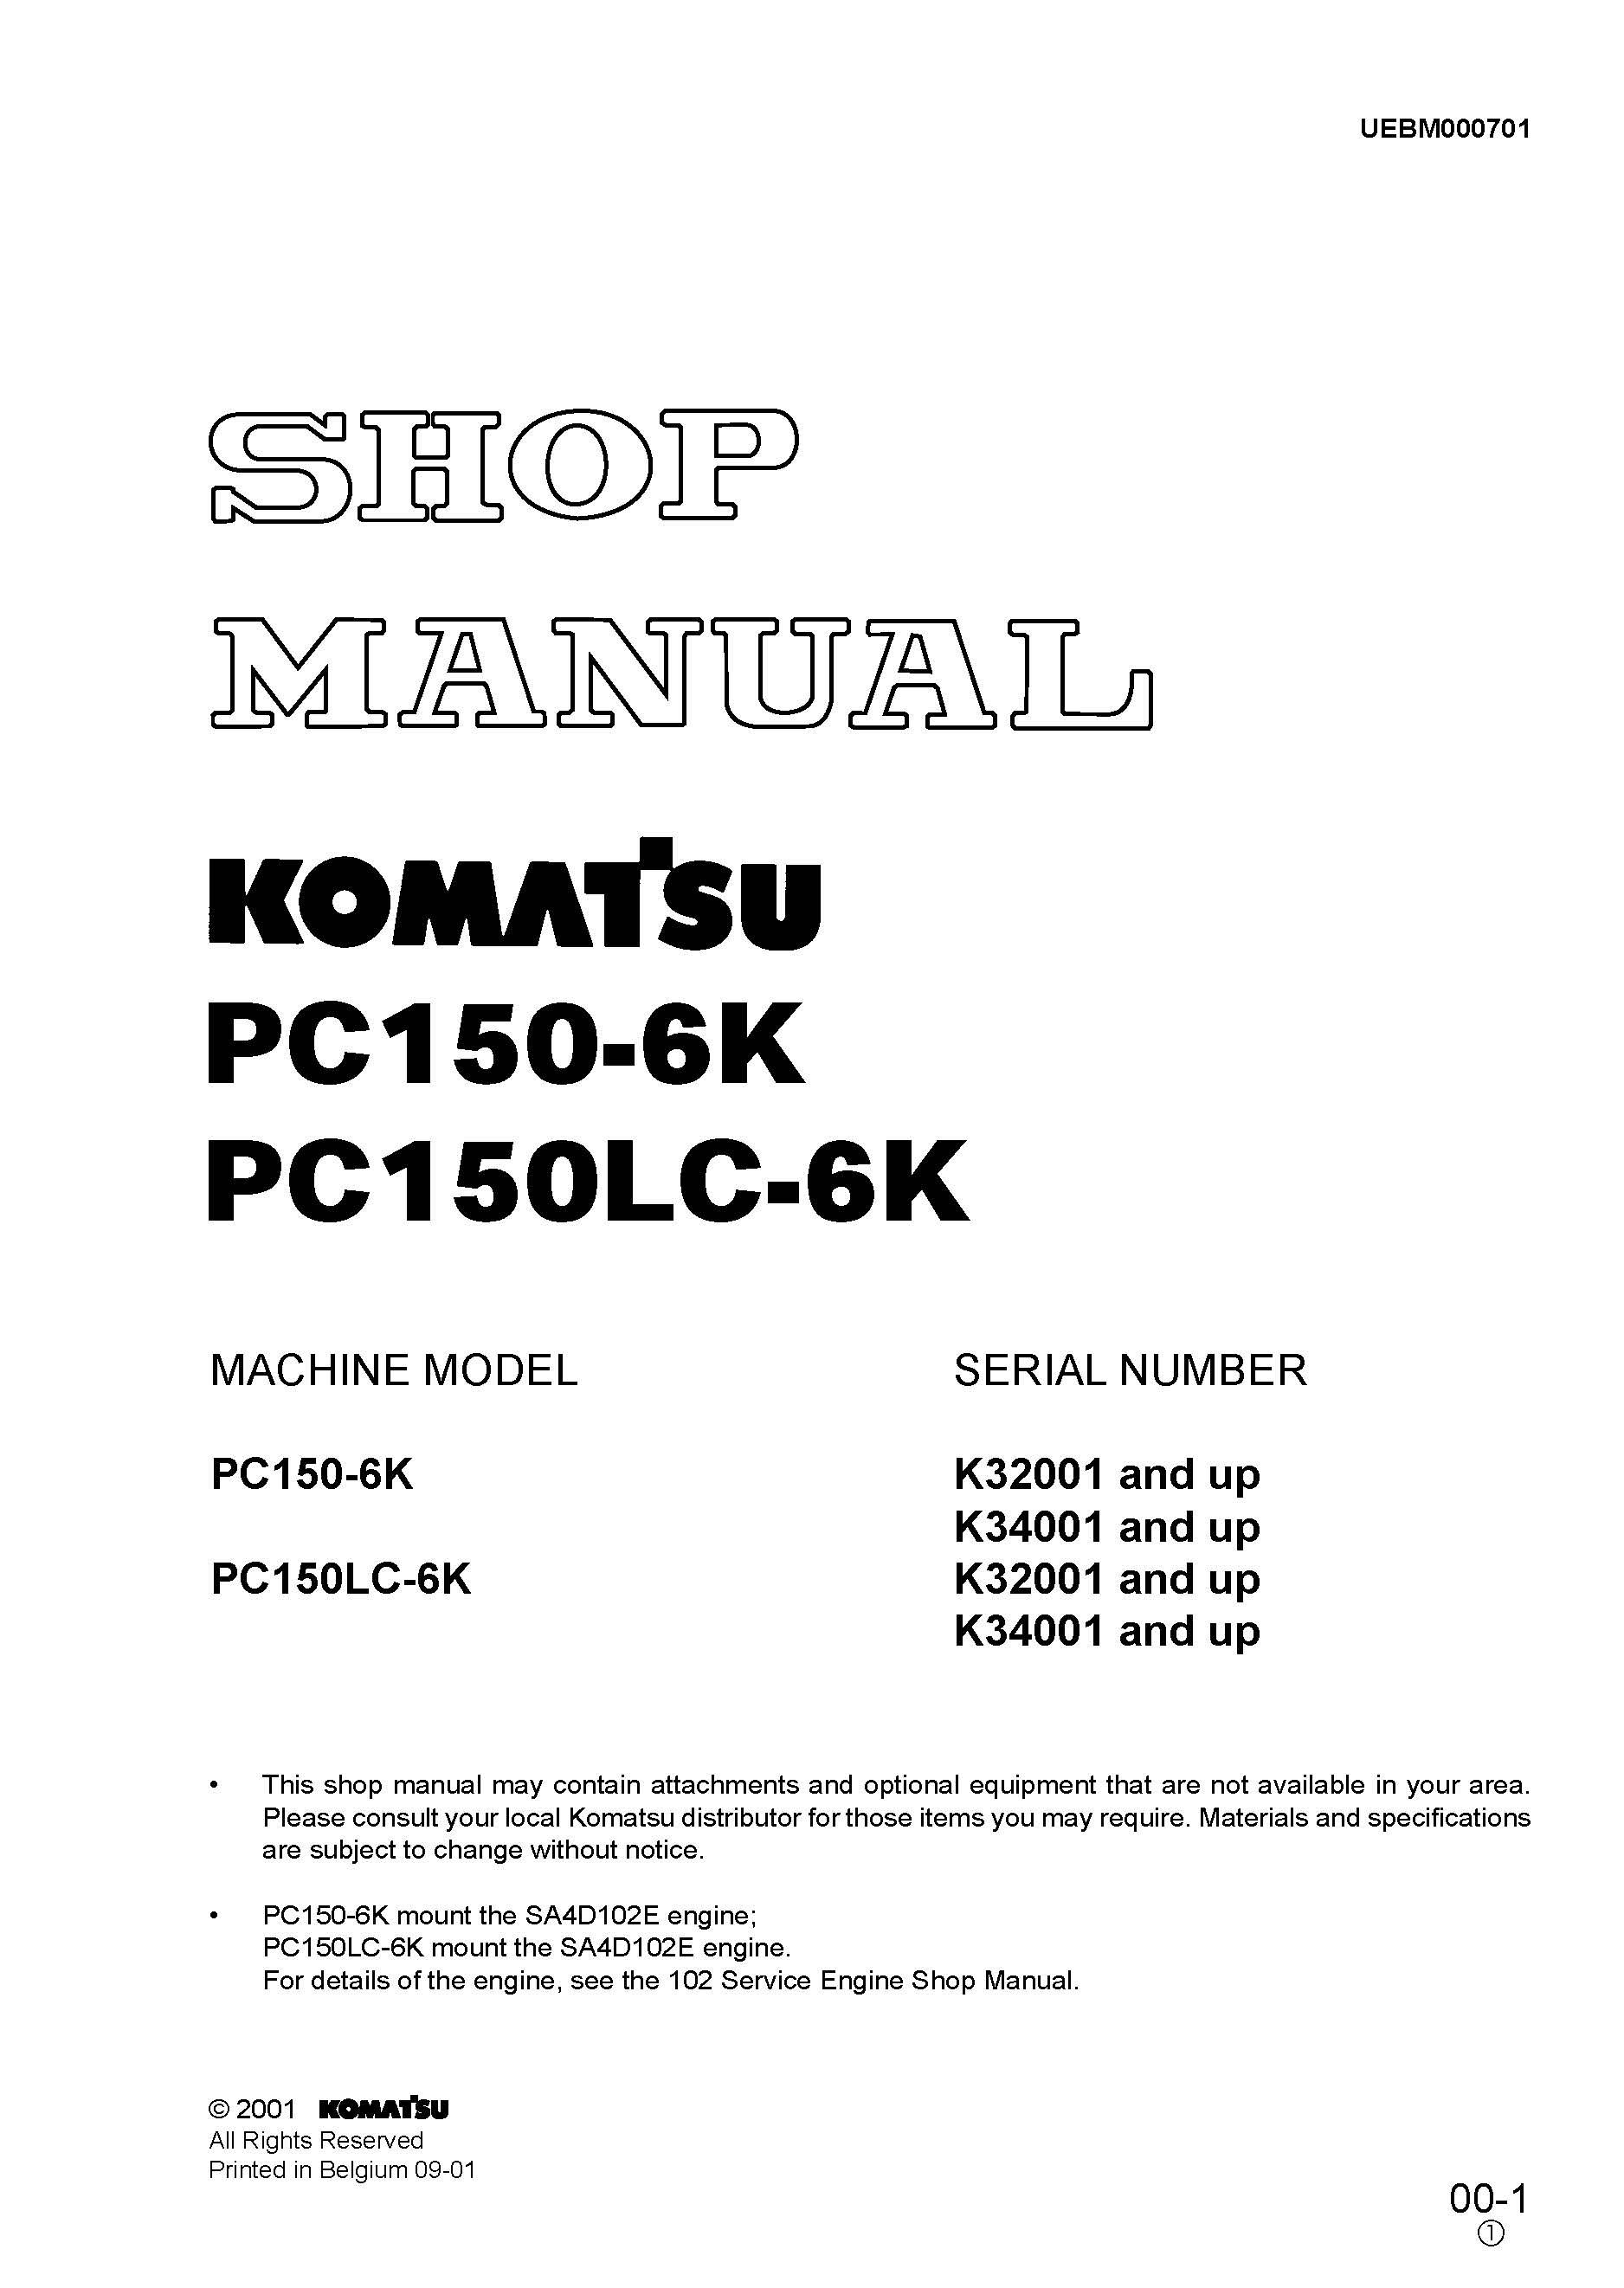 Komatsu Pc150 6k Pc150lc 6k Hydraulic Excavator Workshop Repair Service Manual Pdf Download Service Manual Repair Manual Pdf Download Hydraulic Excavator Komatsu Excavator